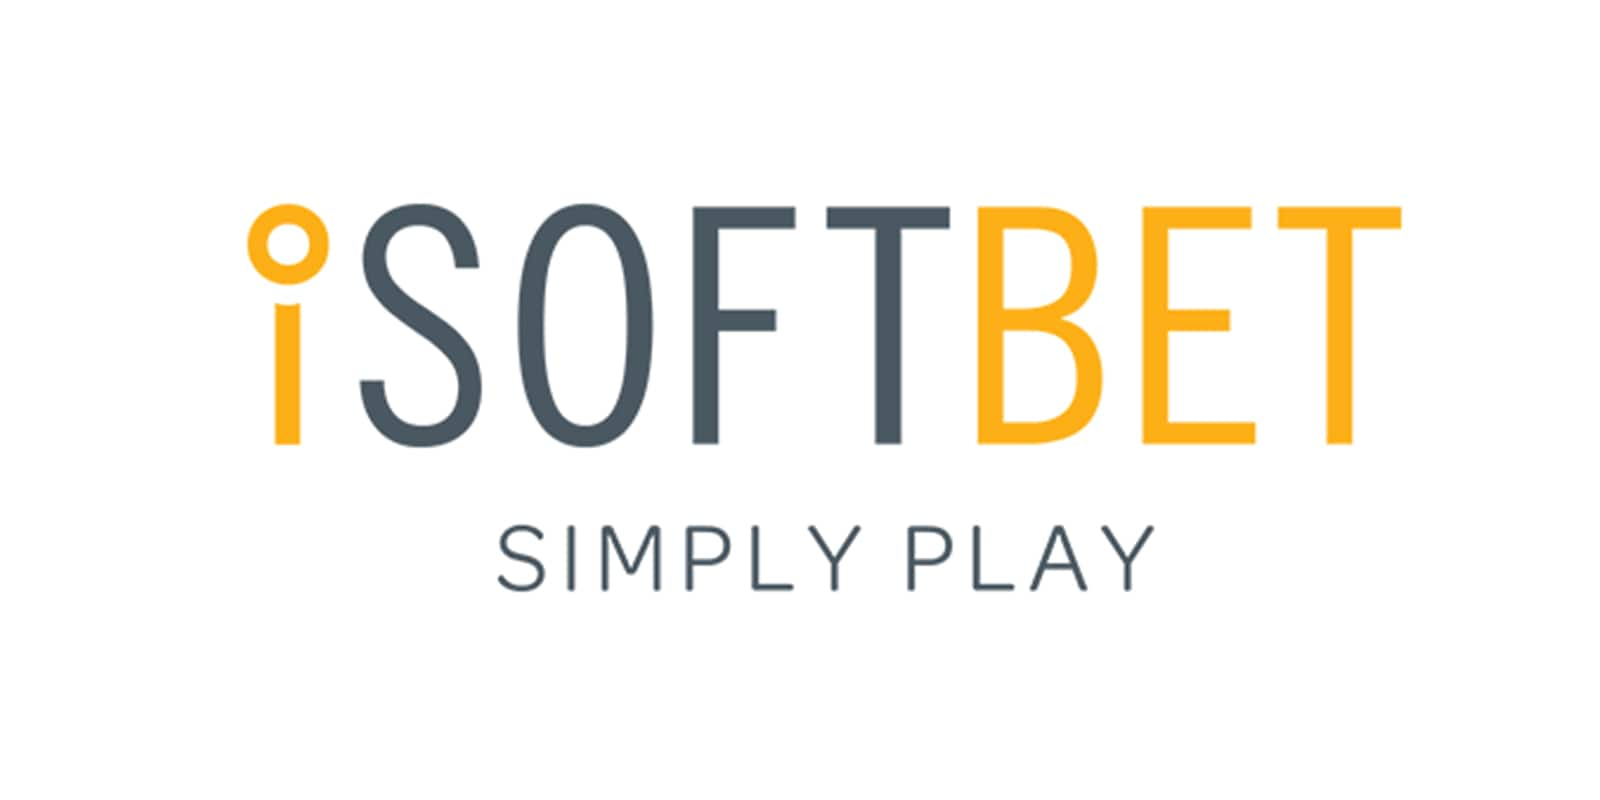 Online Games Supplier iSoftBet Signs Agreement with the Biggest Brand in the Baltic States, Olybet